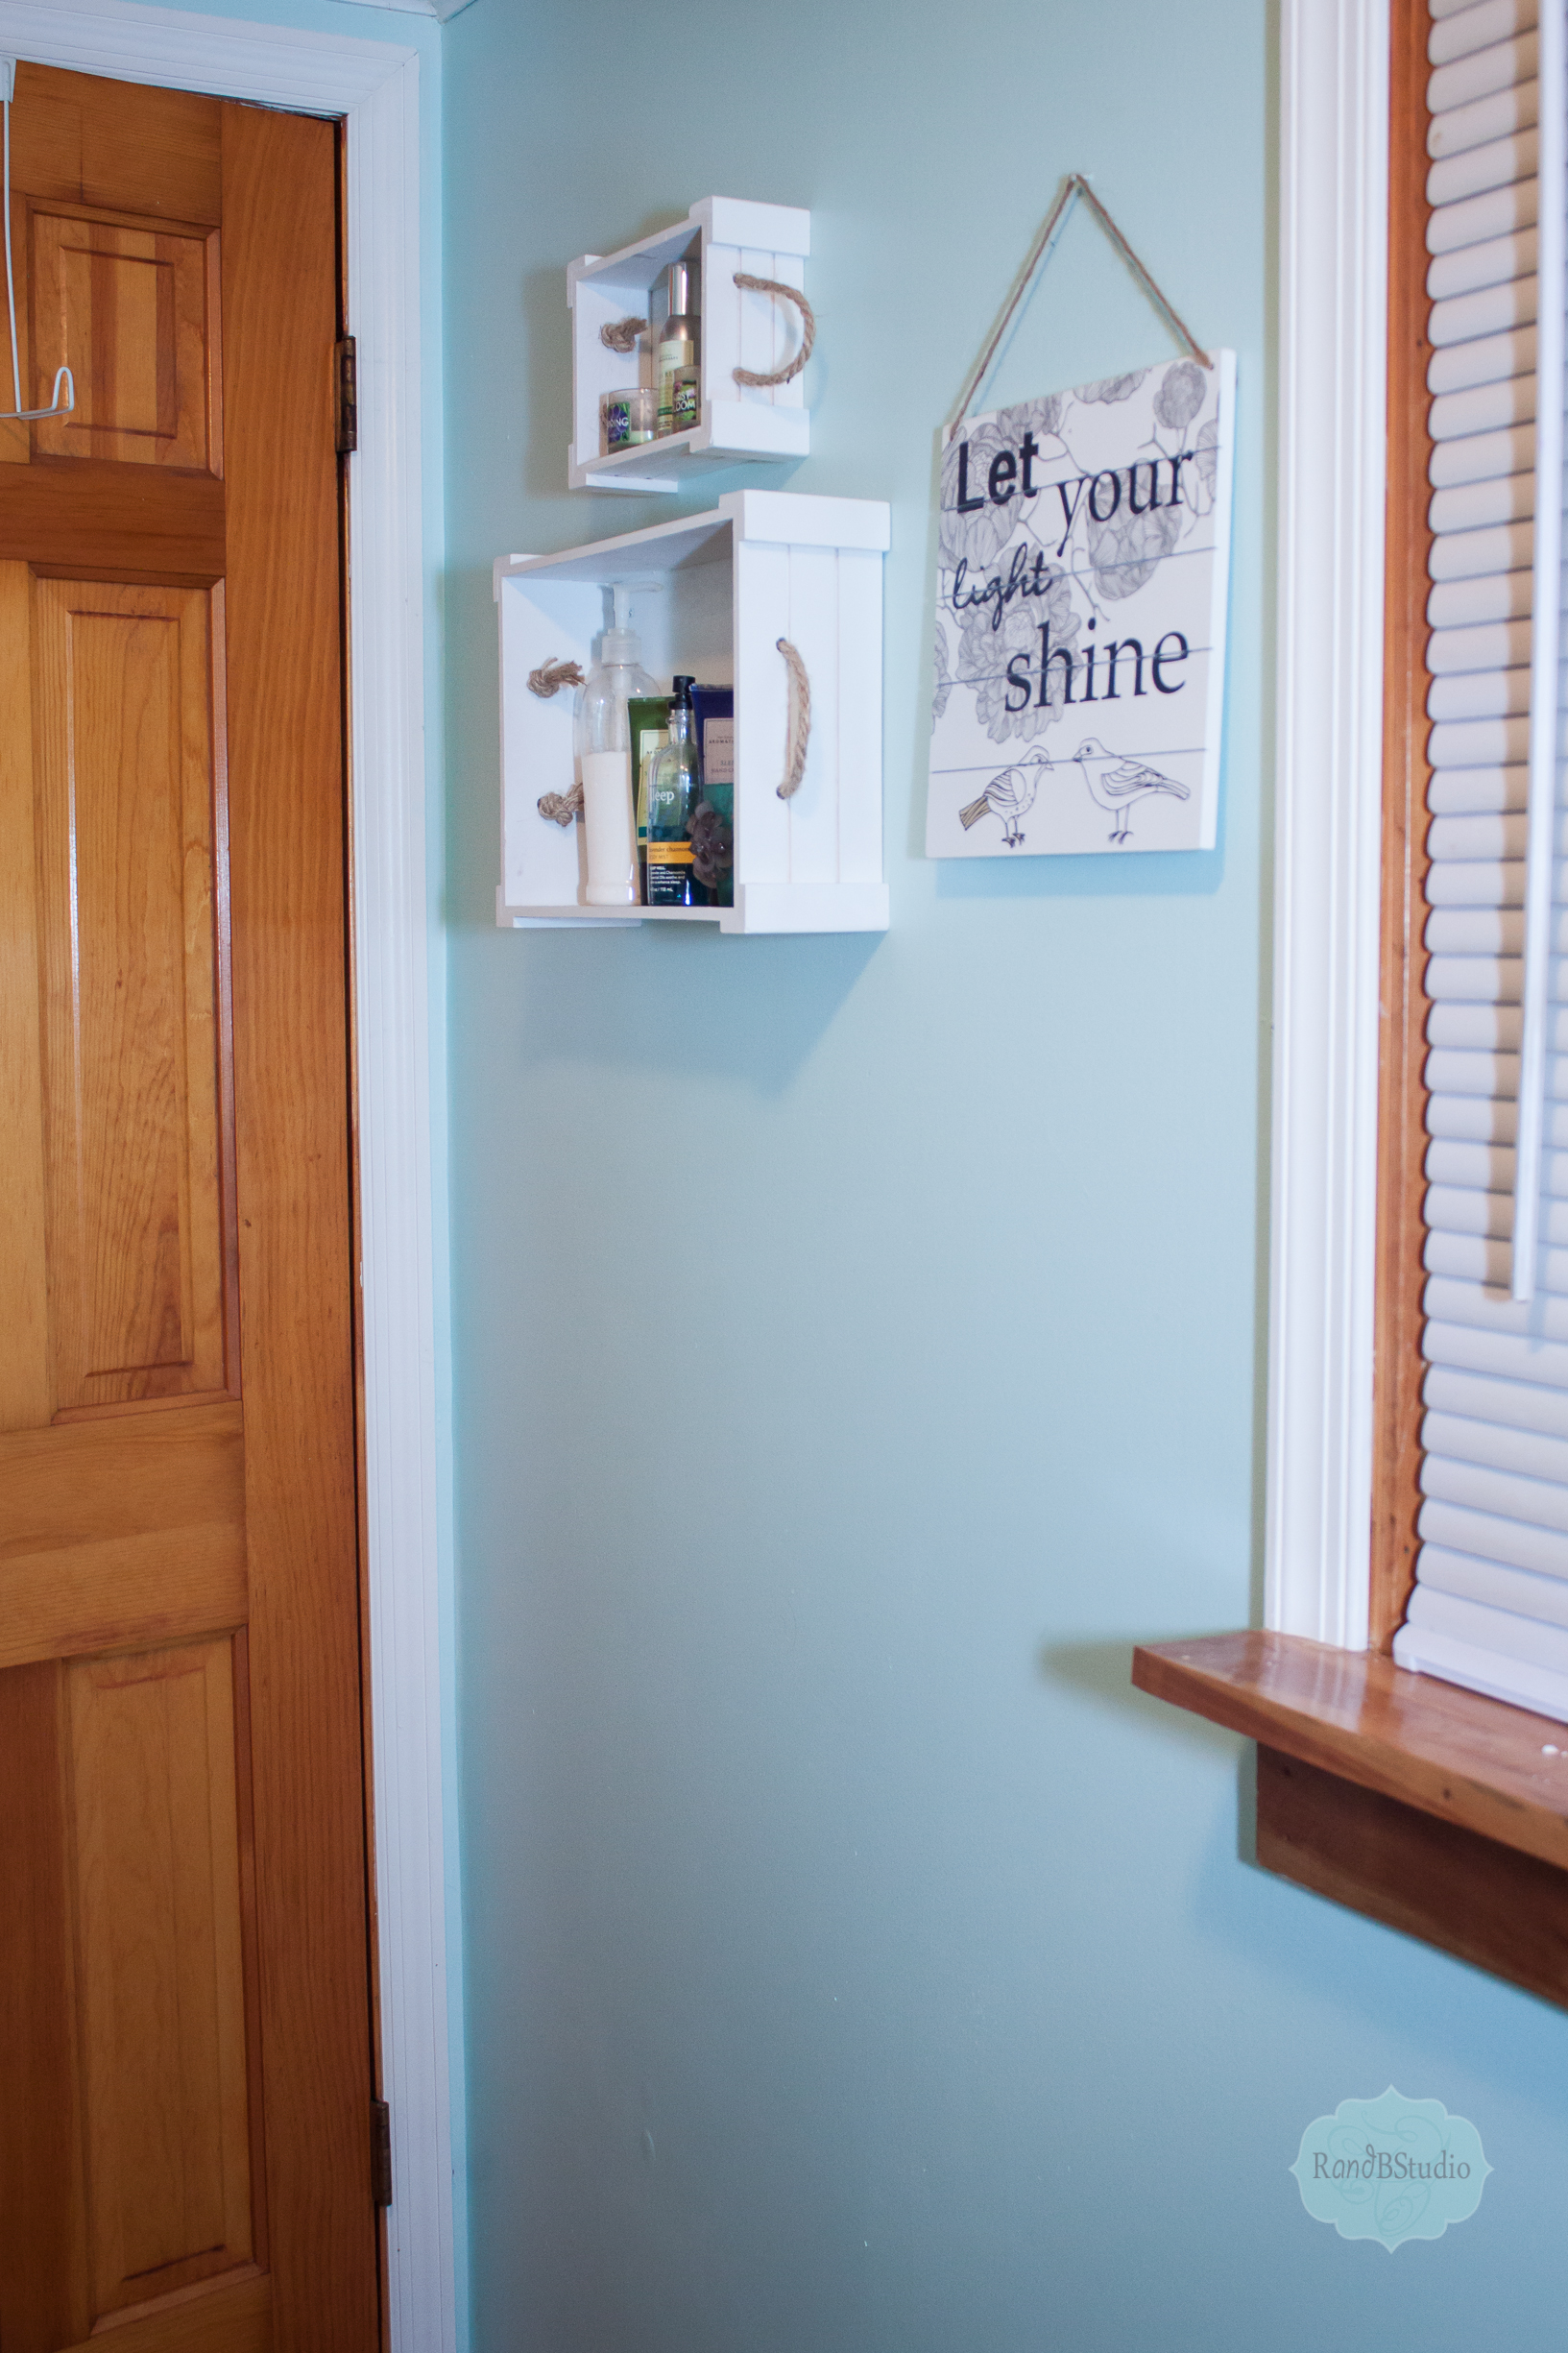 We spruced up our bathroom with a few pieces.    I picked up this cute hanging sign at Hobby Lobby 50% off.    These boxes I also picked up at Hobby Lobby for a few bucks, they were unfinished wood so Iuntied the handles and did two coats of spray paint and now we have two little shelves.